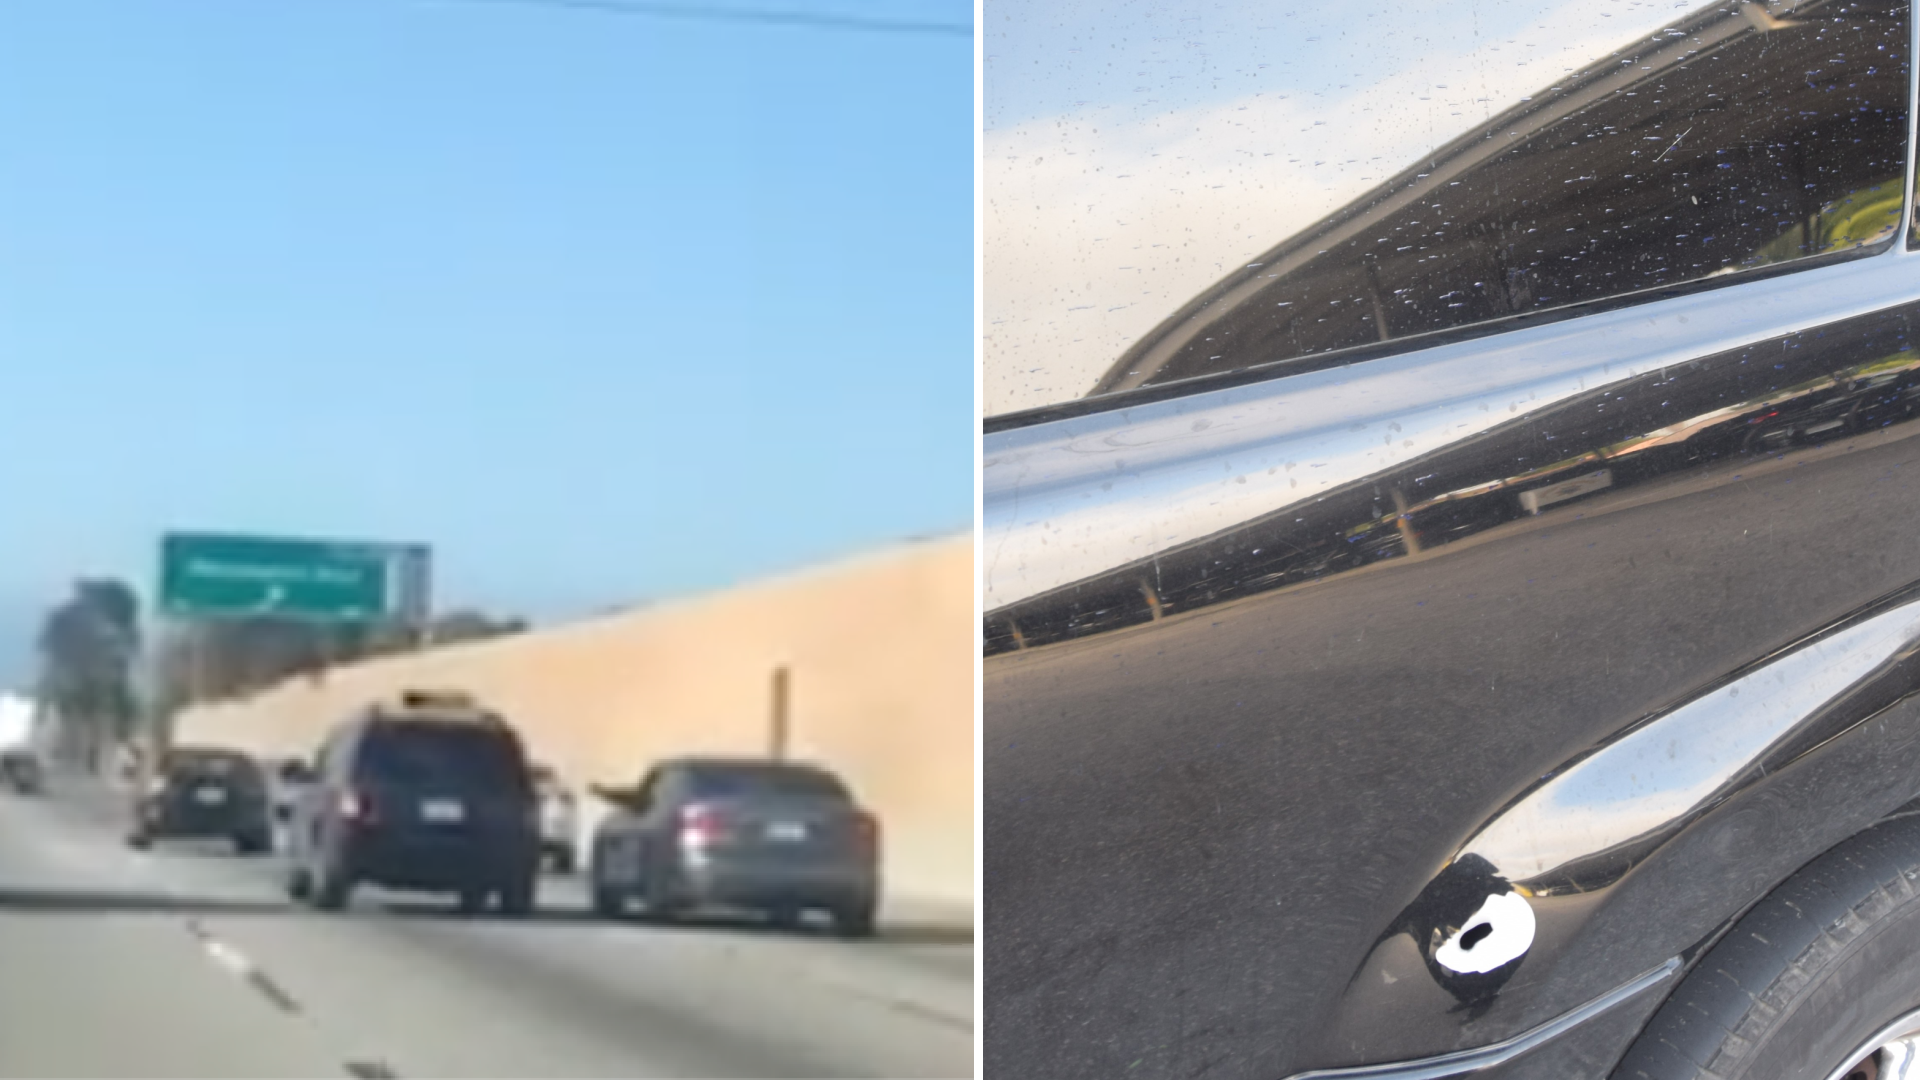 A driver in a silver sedan aims pepper spray at the occupants of a black SUV on in 605 Freeway in Whittier on May 3, 2020. On the right, the bullet hole is seen in the vehicle that was shot at. (CHP)